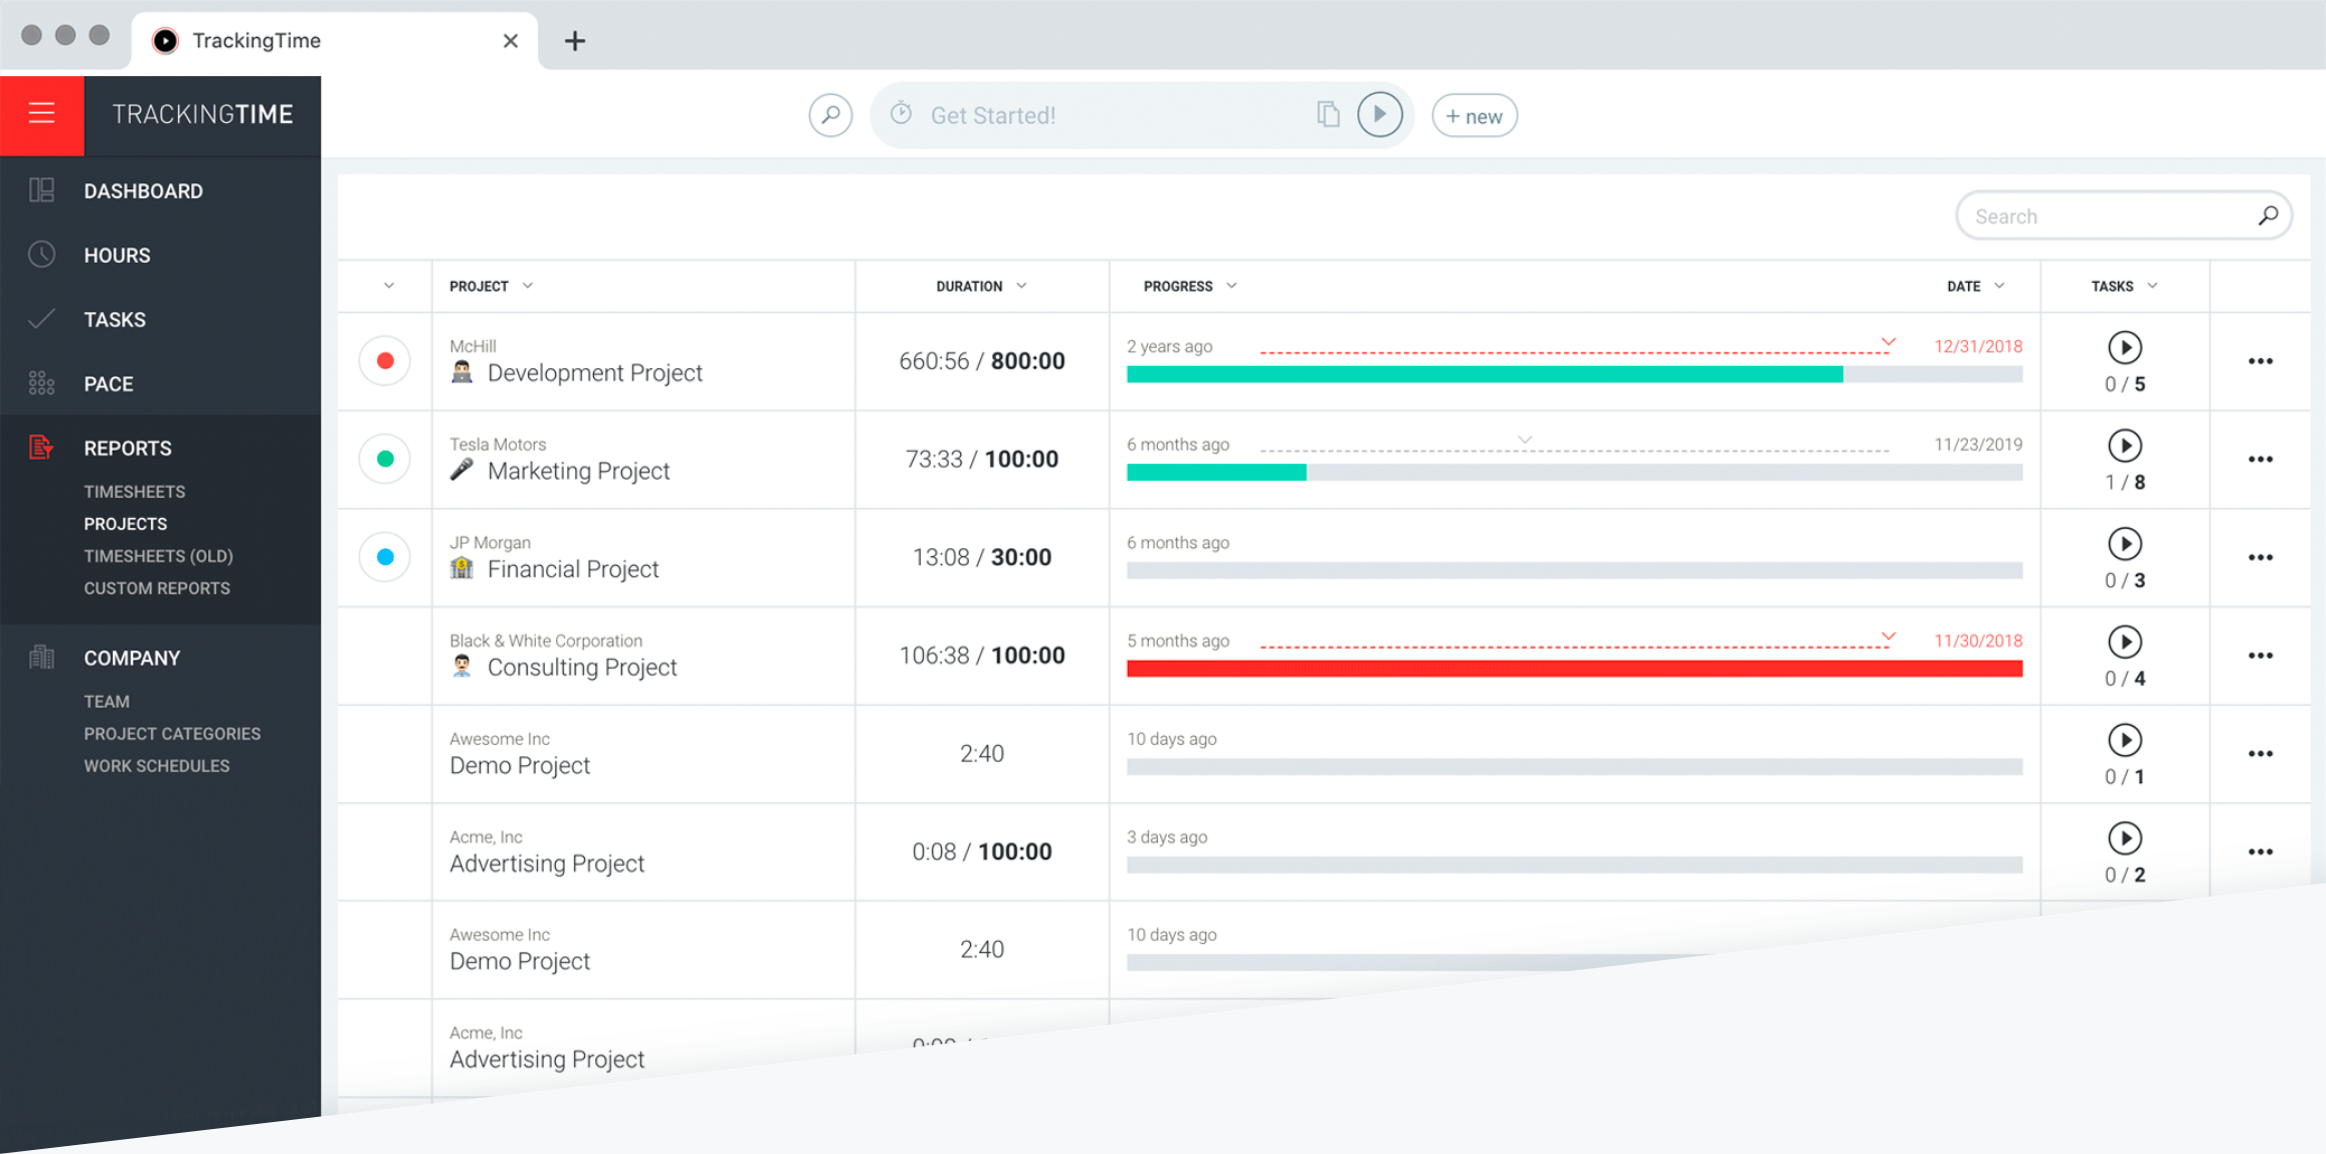 Track clients, projects and tasks